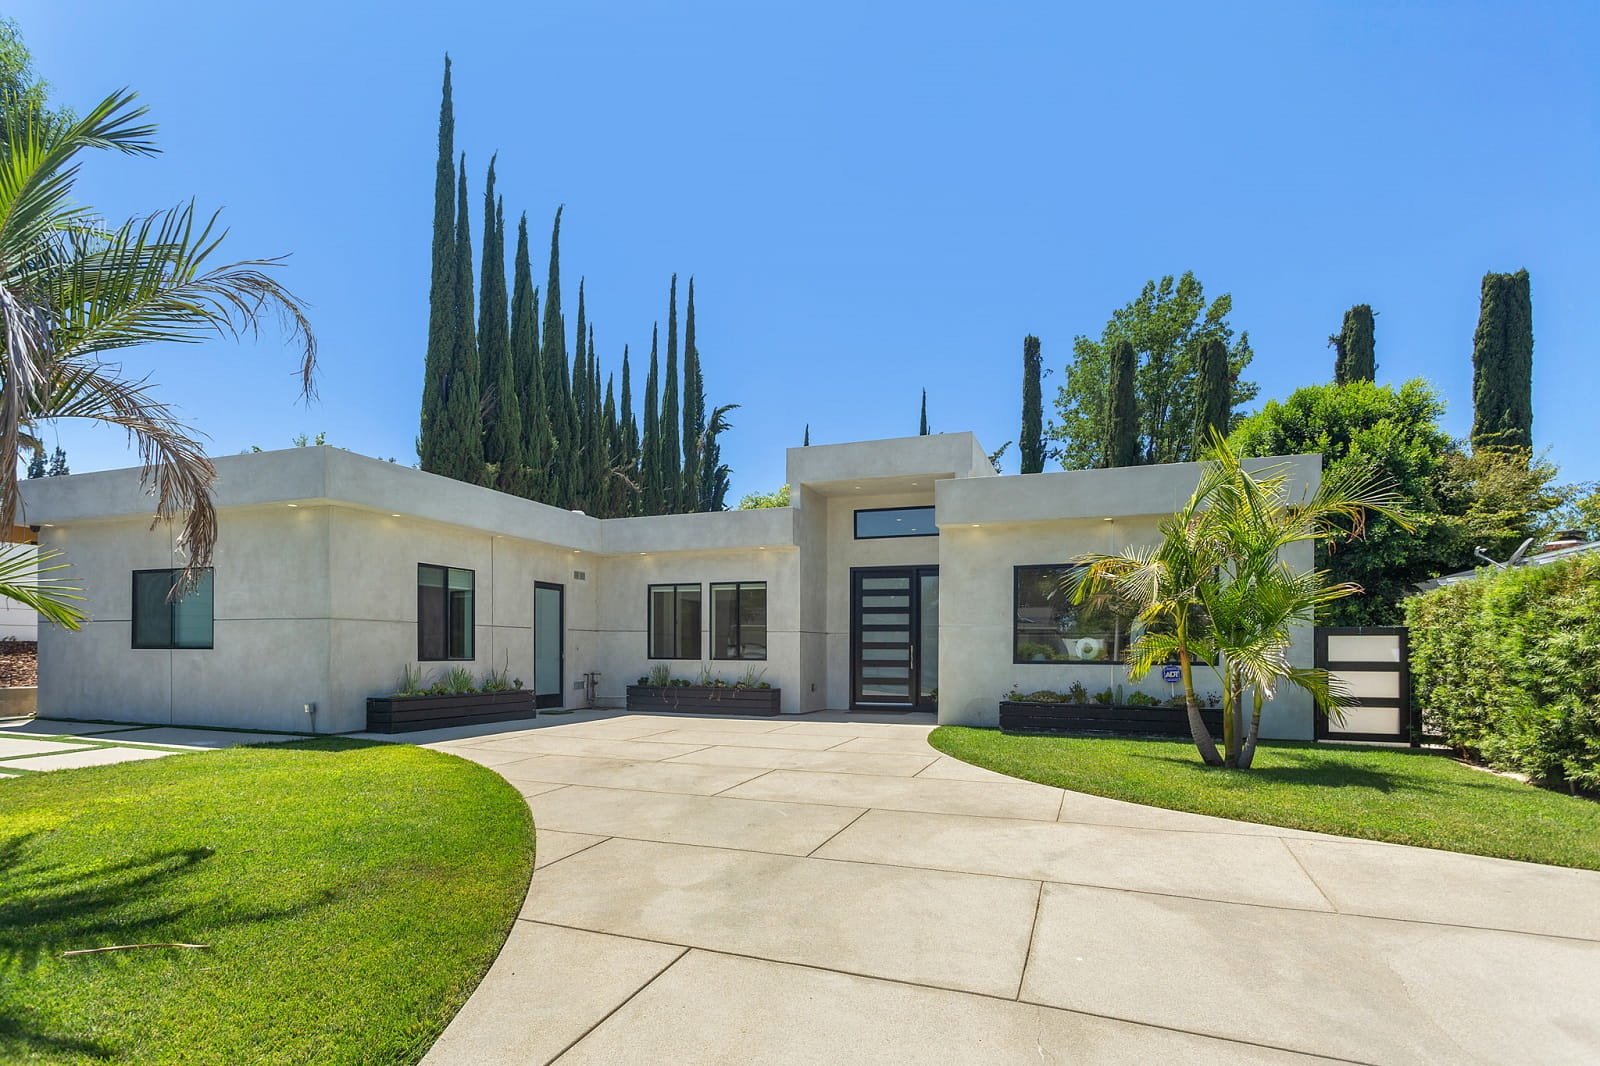 Real Estate Photography in Calabasas - CA - USA - Front View